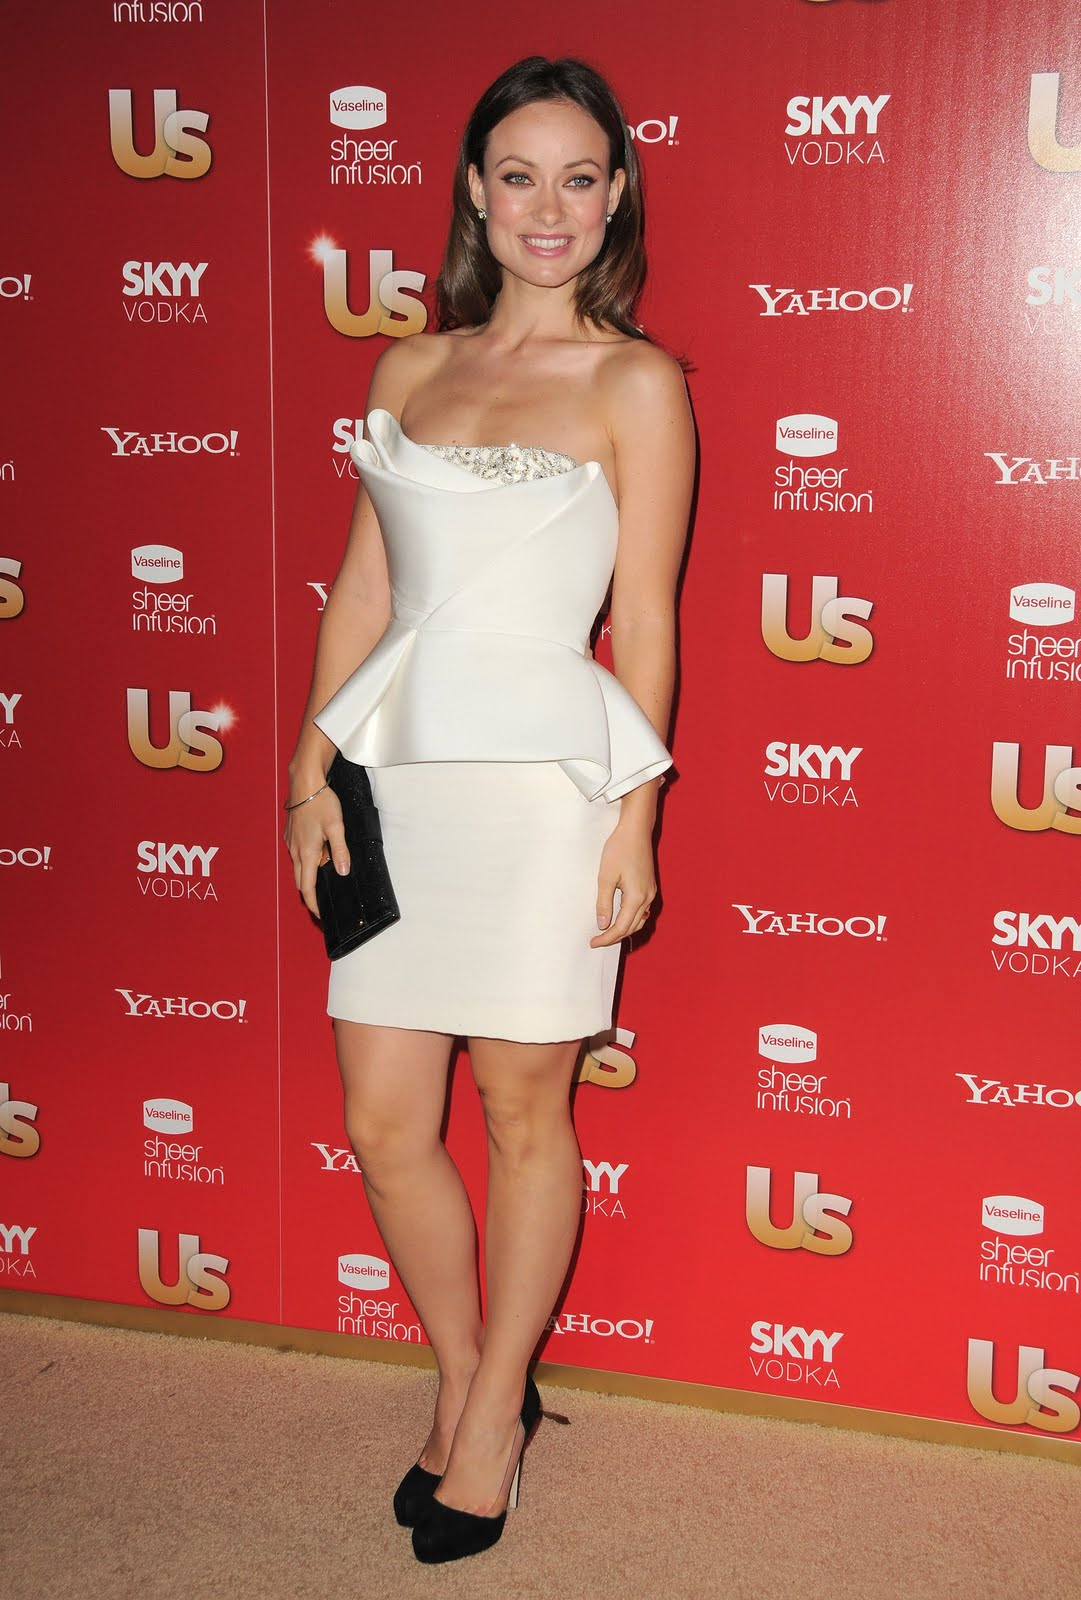 http://3.bp.blogspot.com/_R5WS6_kmmTI/SwX0Tvch-II/AAAAAAAAggk/b4MD2q5g1AI/s1600/Olivia_Wilde_at-the_US_Weekly_Hot_Hollywood_Party_in_LA_05.jpg